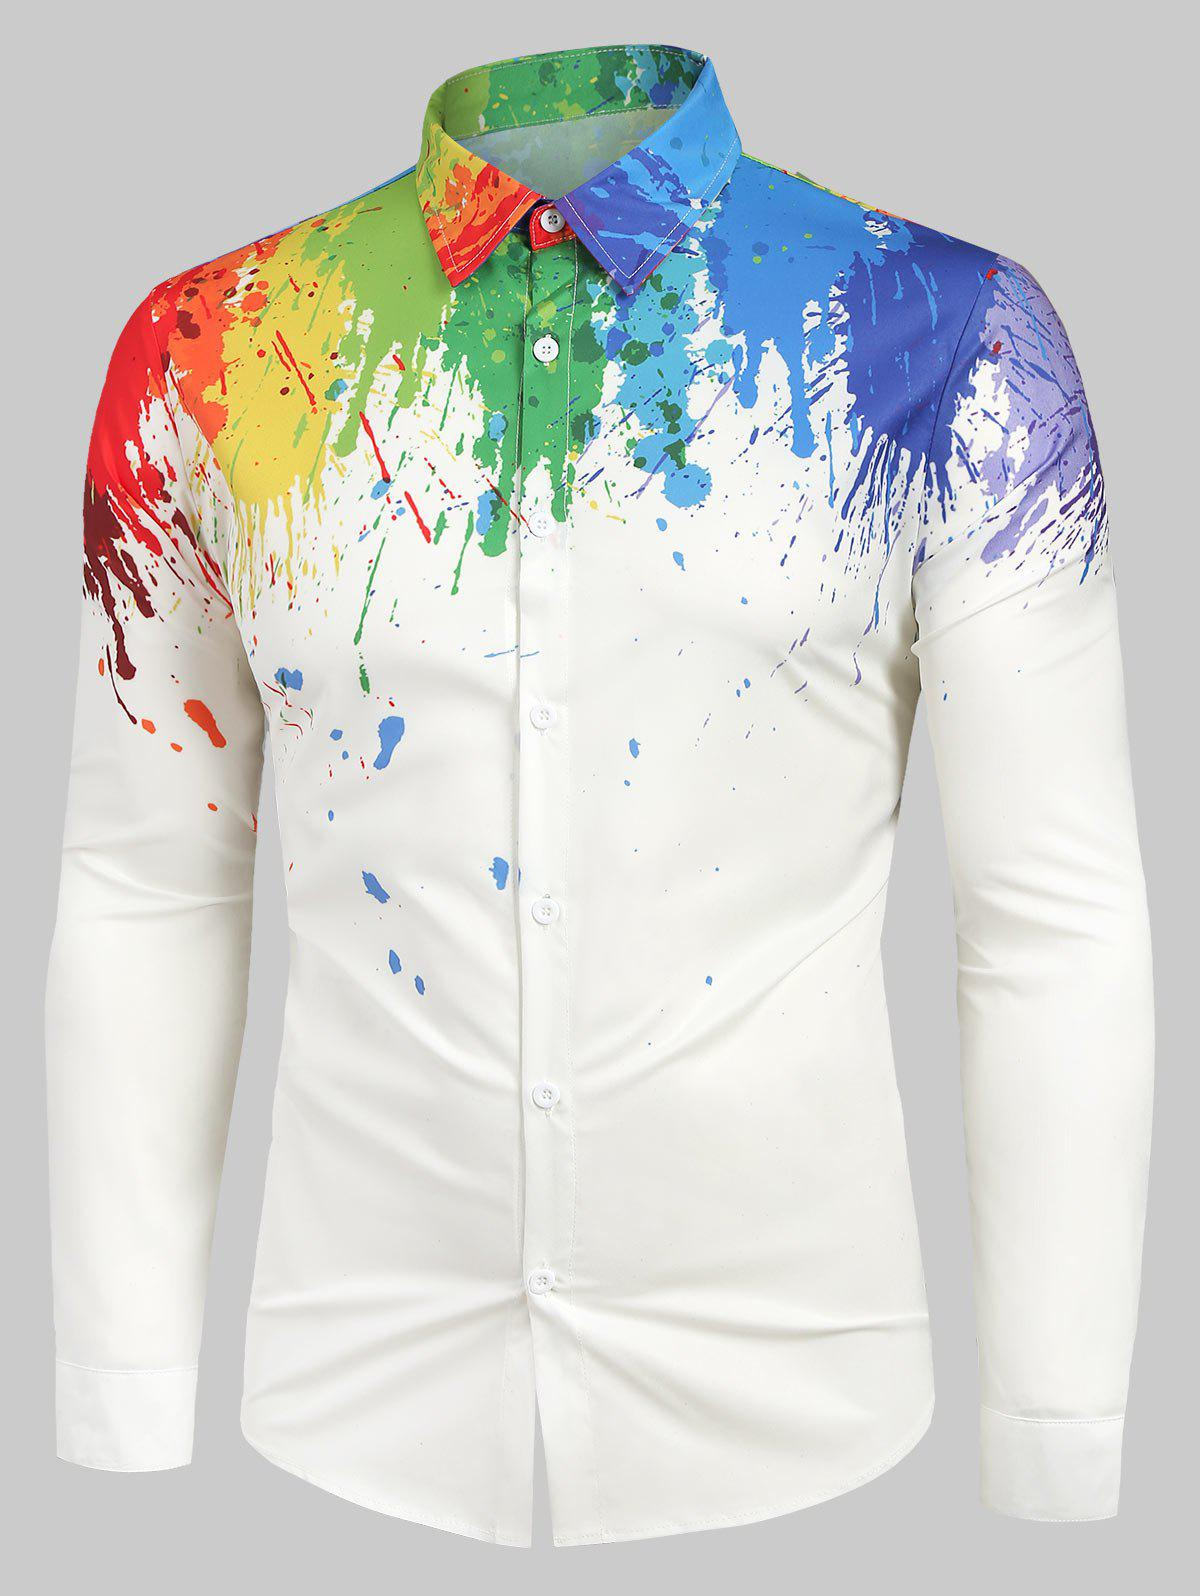 Store Long Sleeves Splatter Painting Print Button Shirt